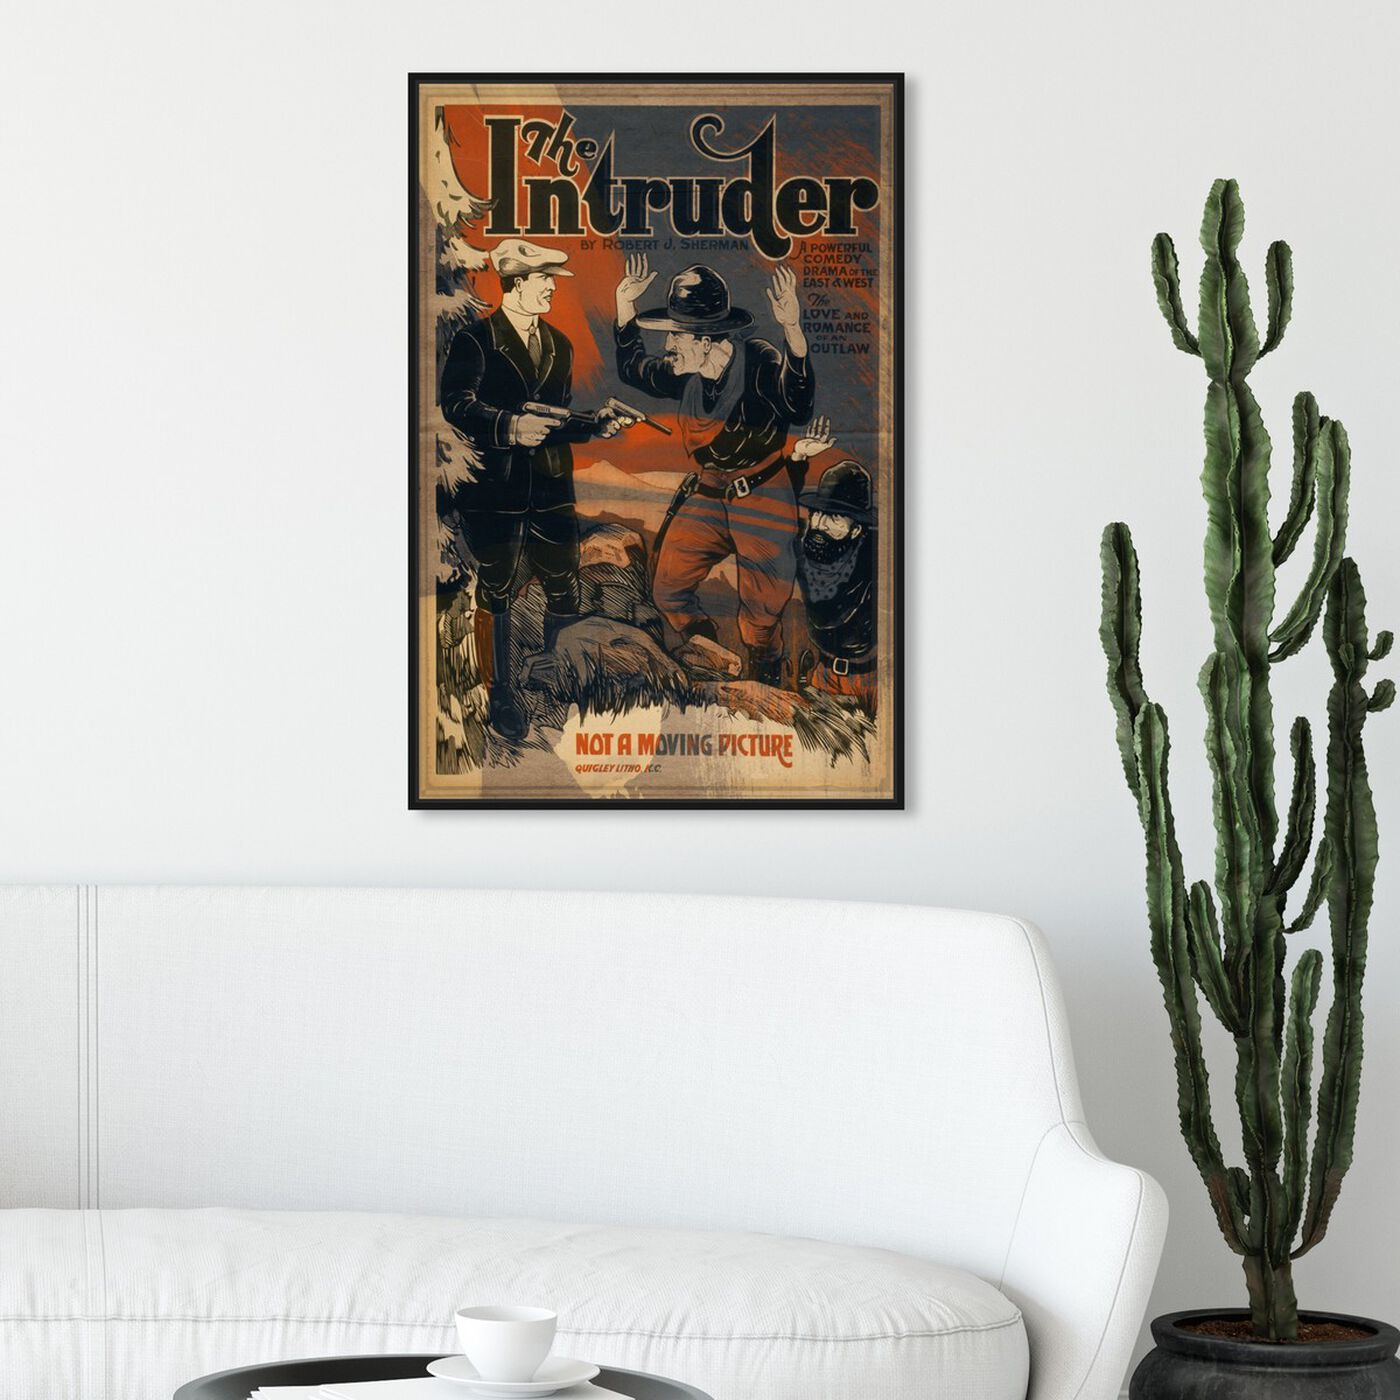 Hanging view of The Intruder featuring advertising and posters art.